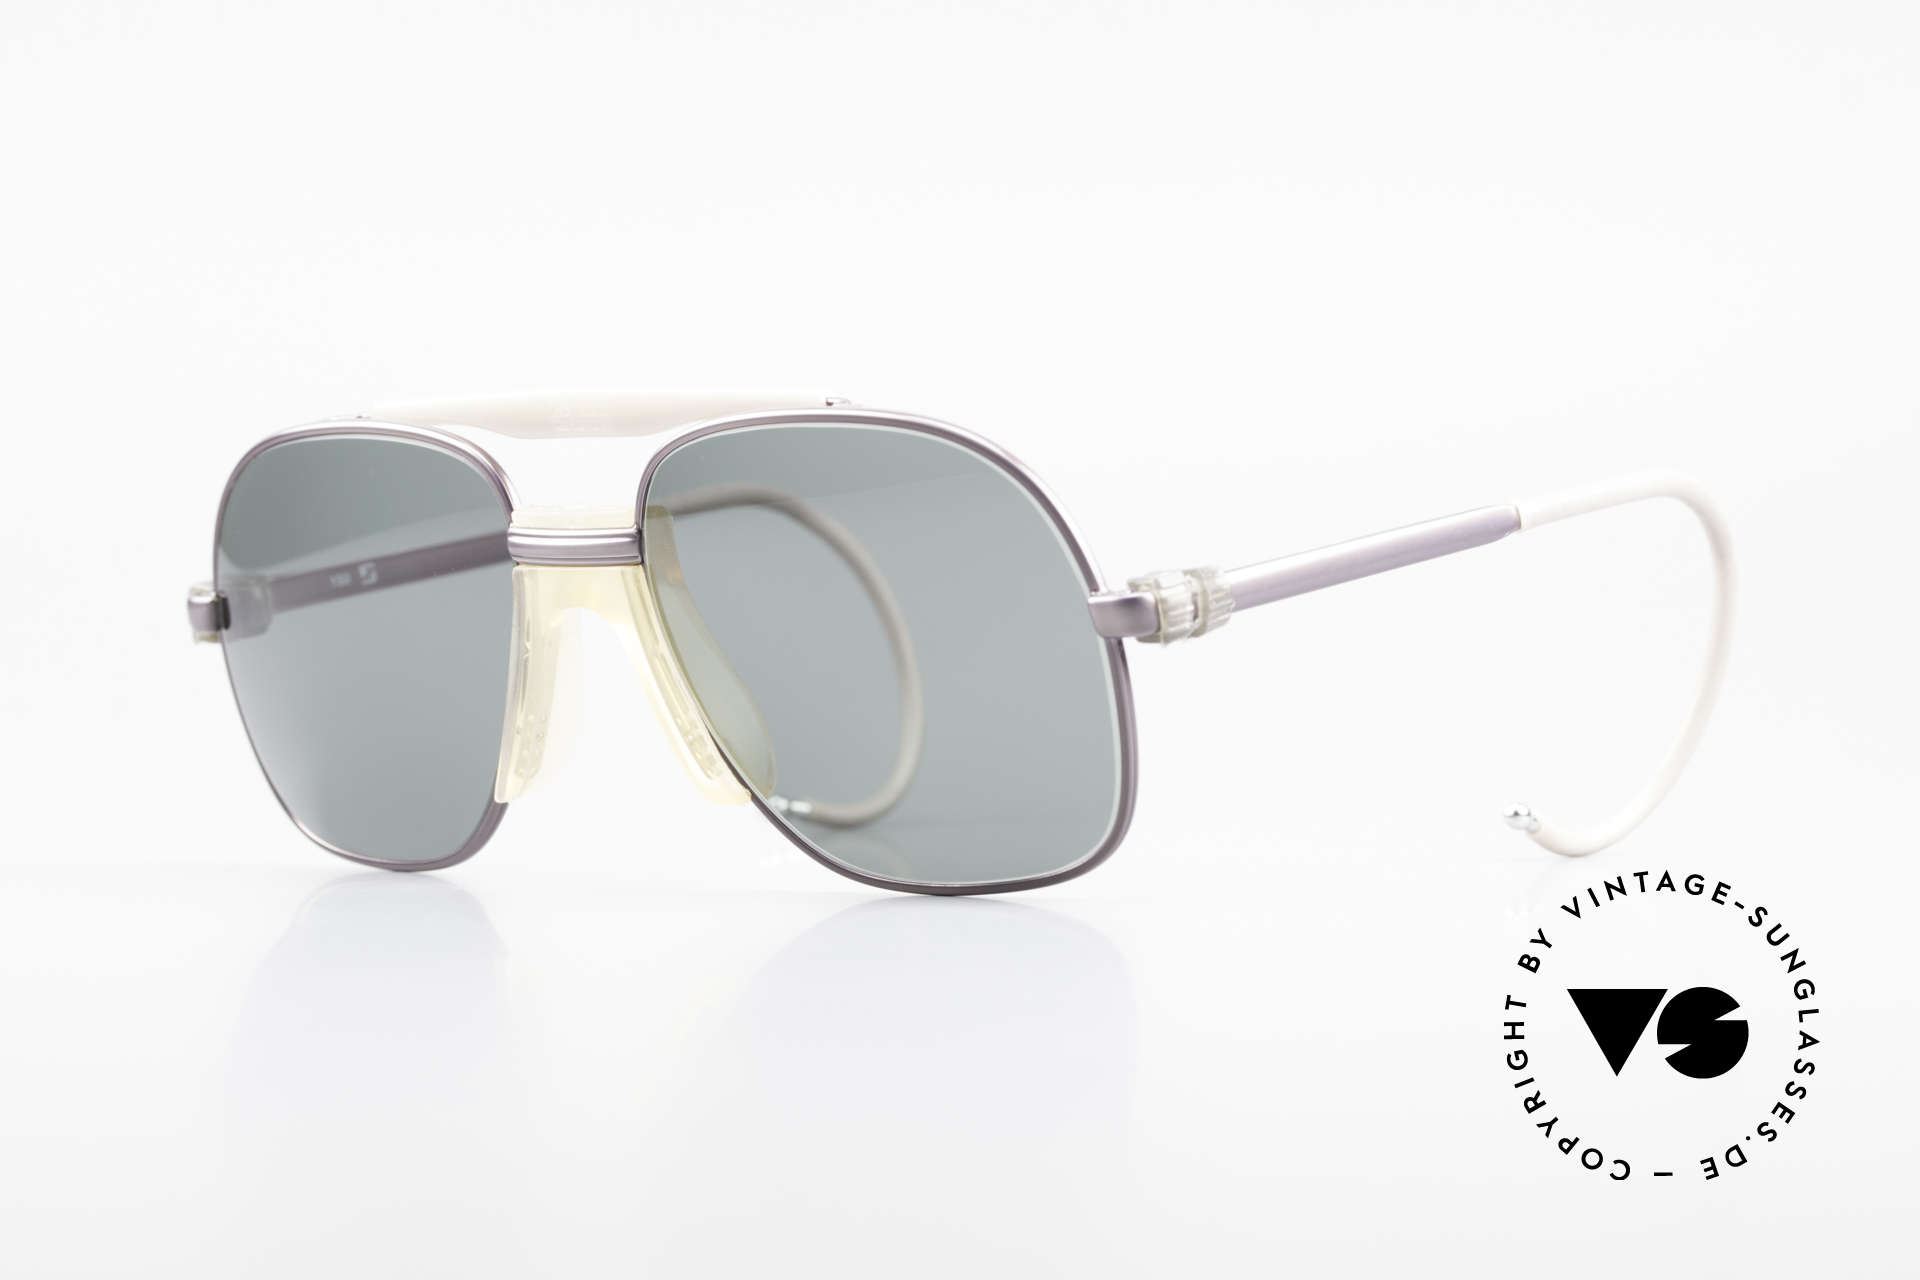 Zeiss 7037 Sports Sunglasses Old School, 'old school' 1980's sunglasses by Zeiss, W.Germany, Made for Men and Women